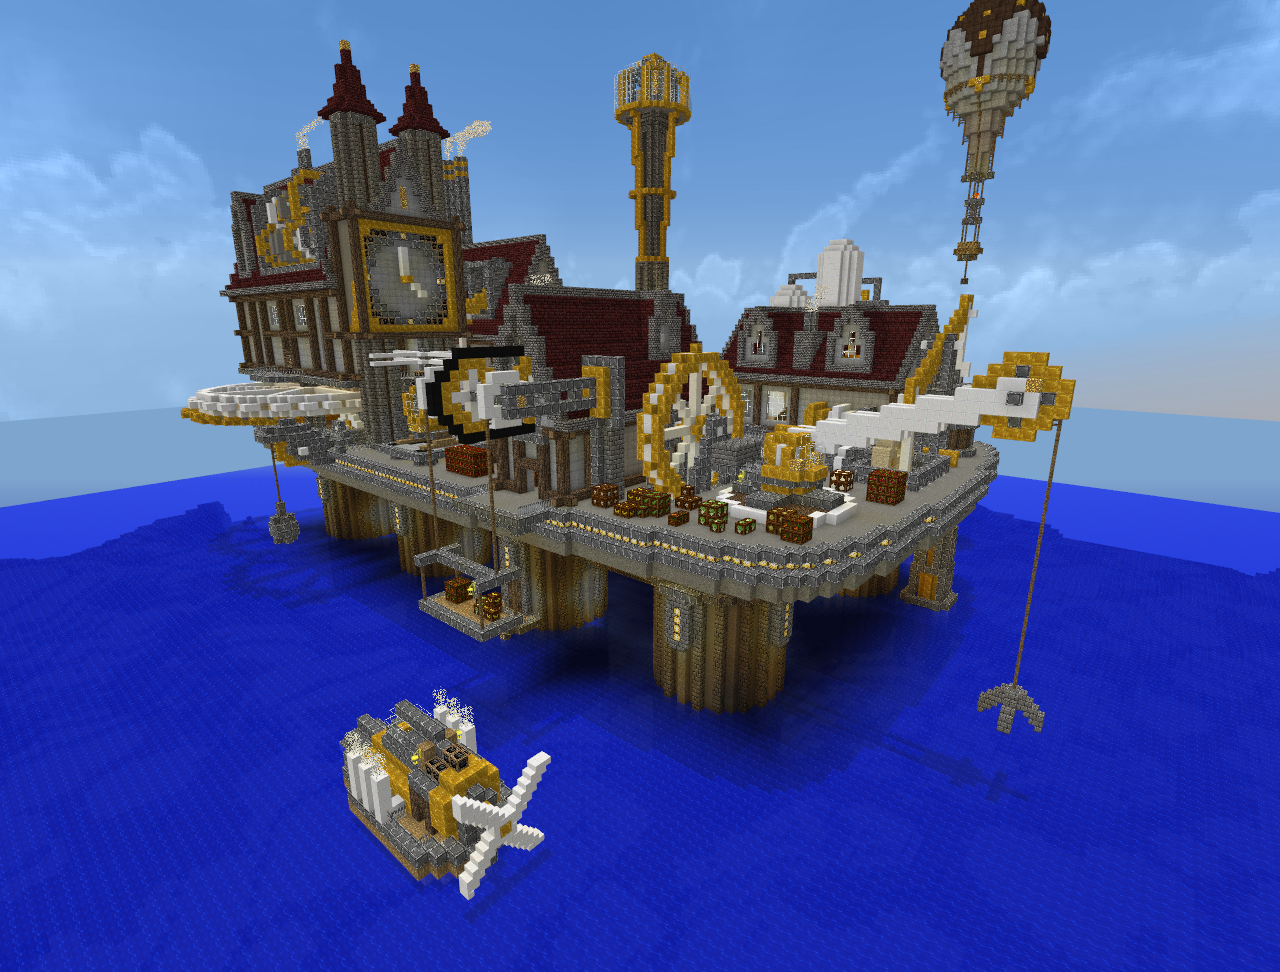 Minecraft - Steampunk City by Virenth on DeviantArt